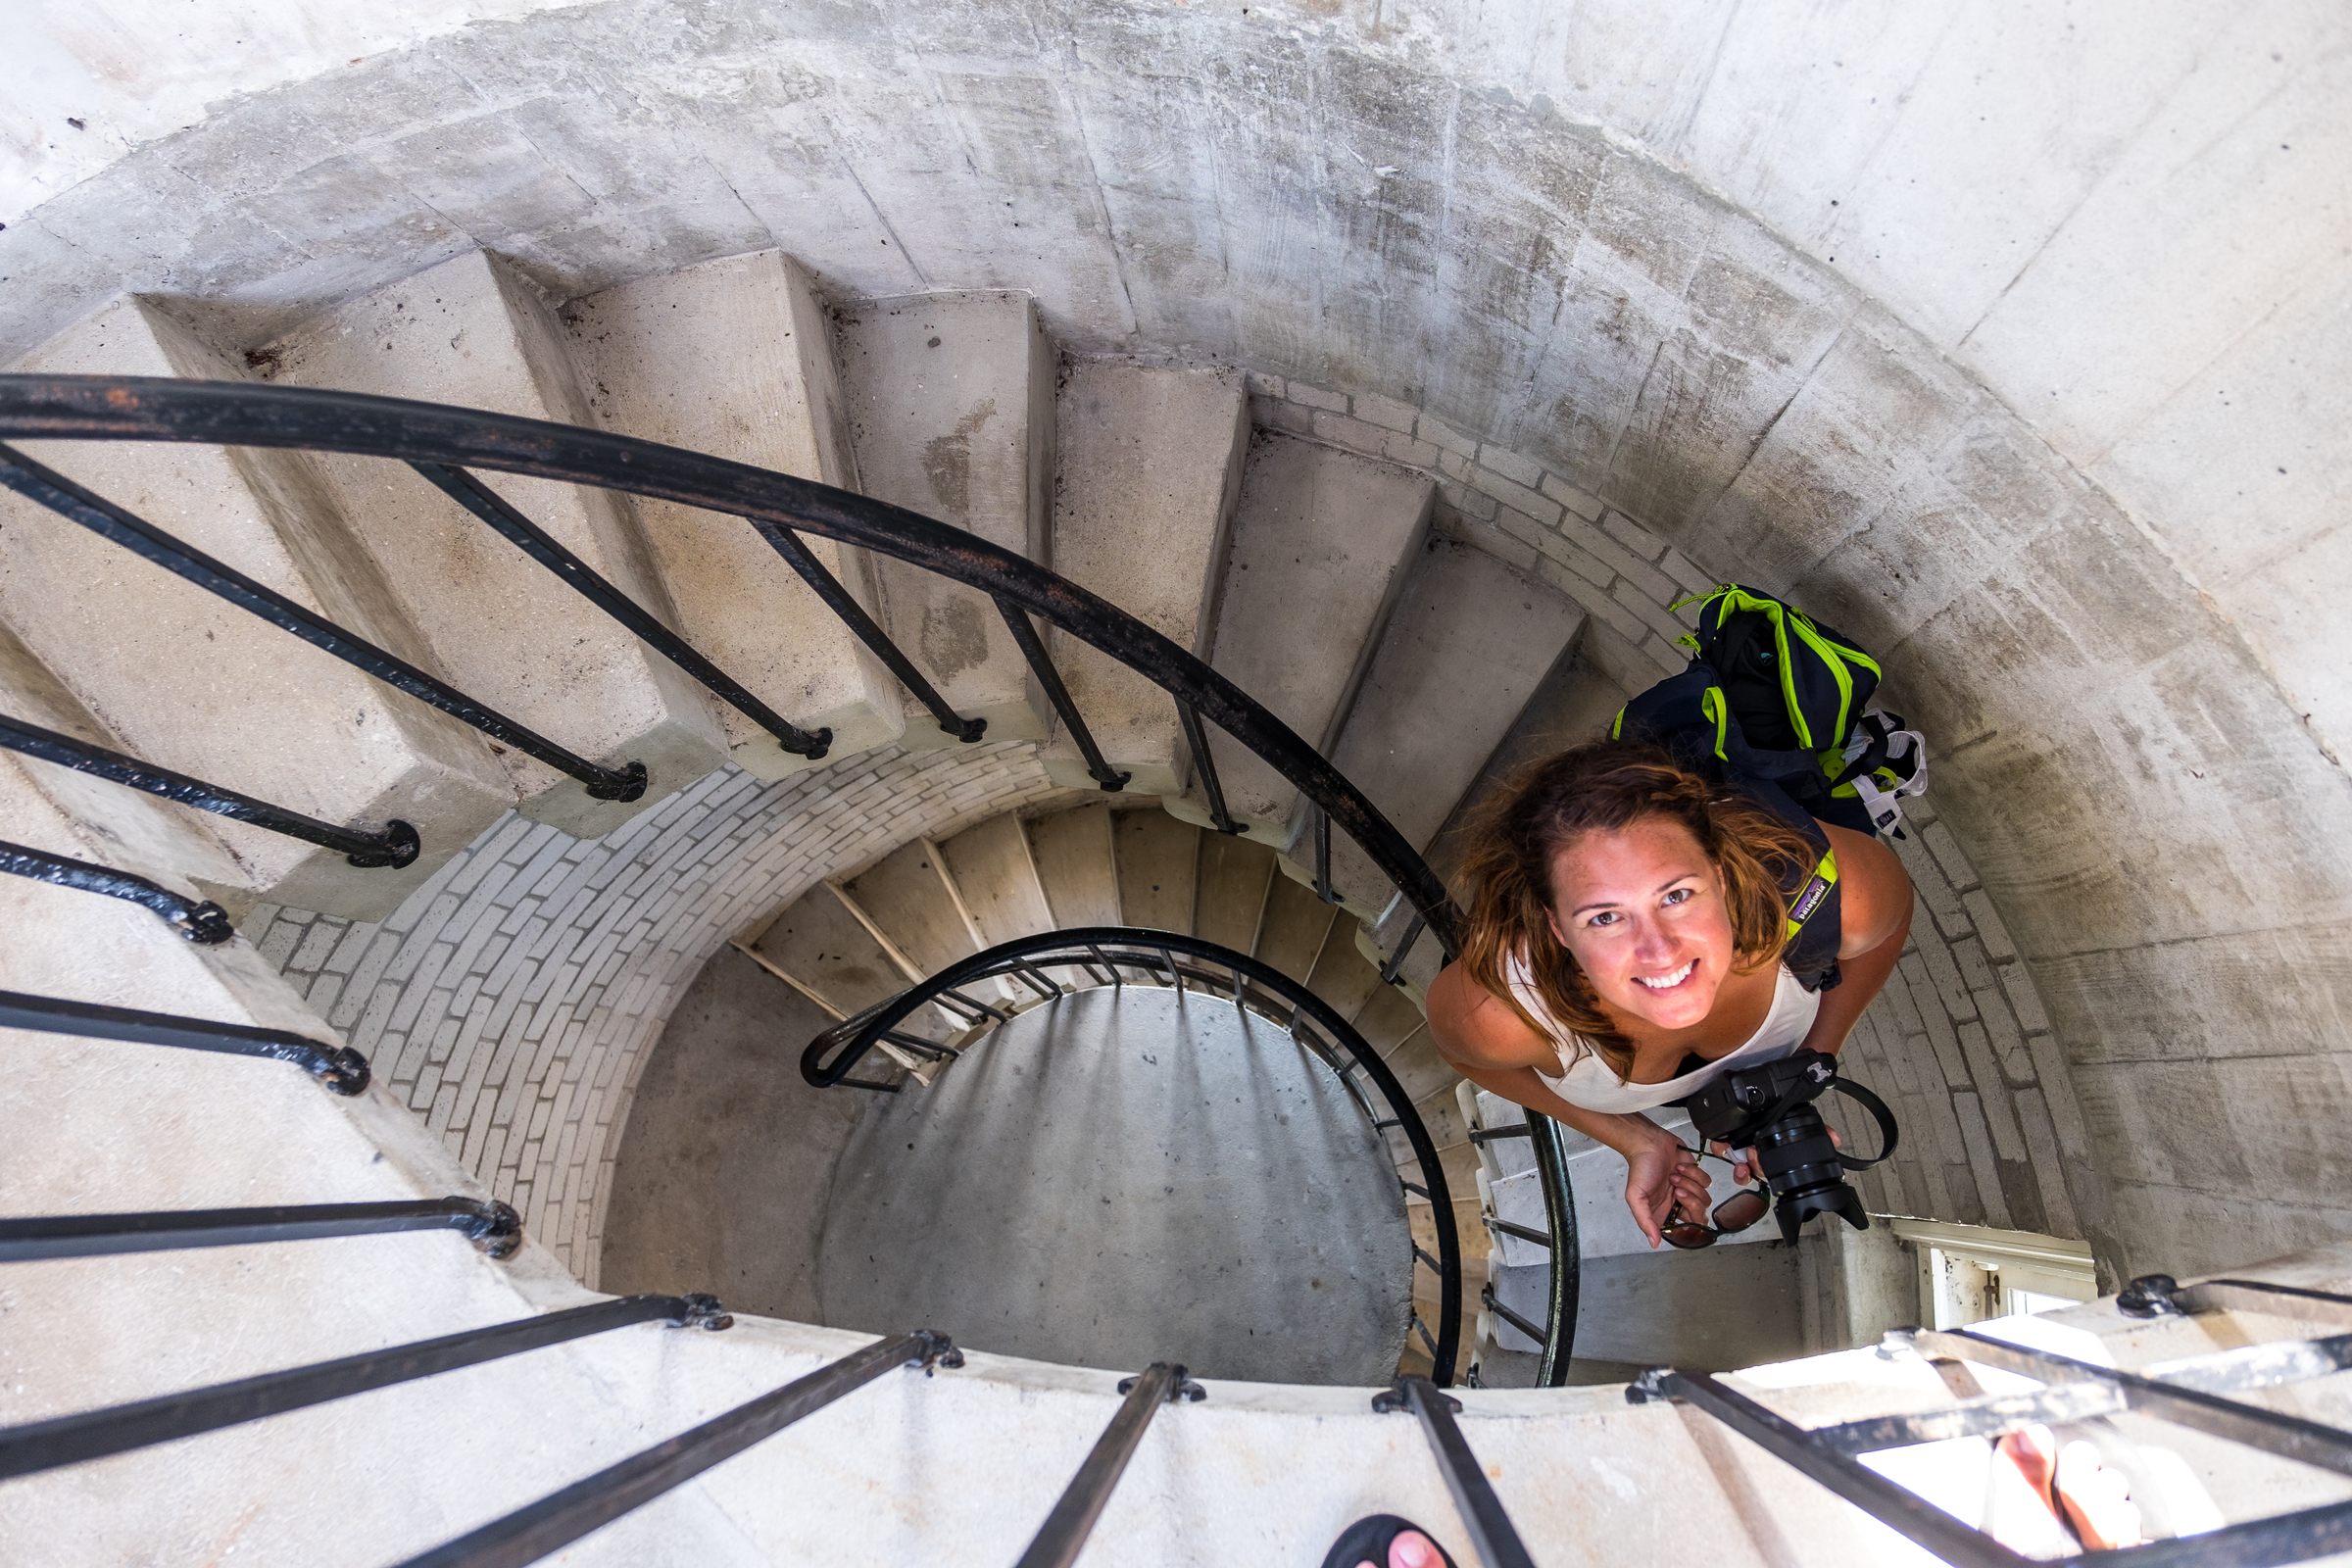 Stef climbs down the circular stairs of the lighthouse.